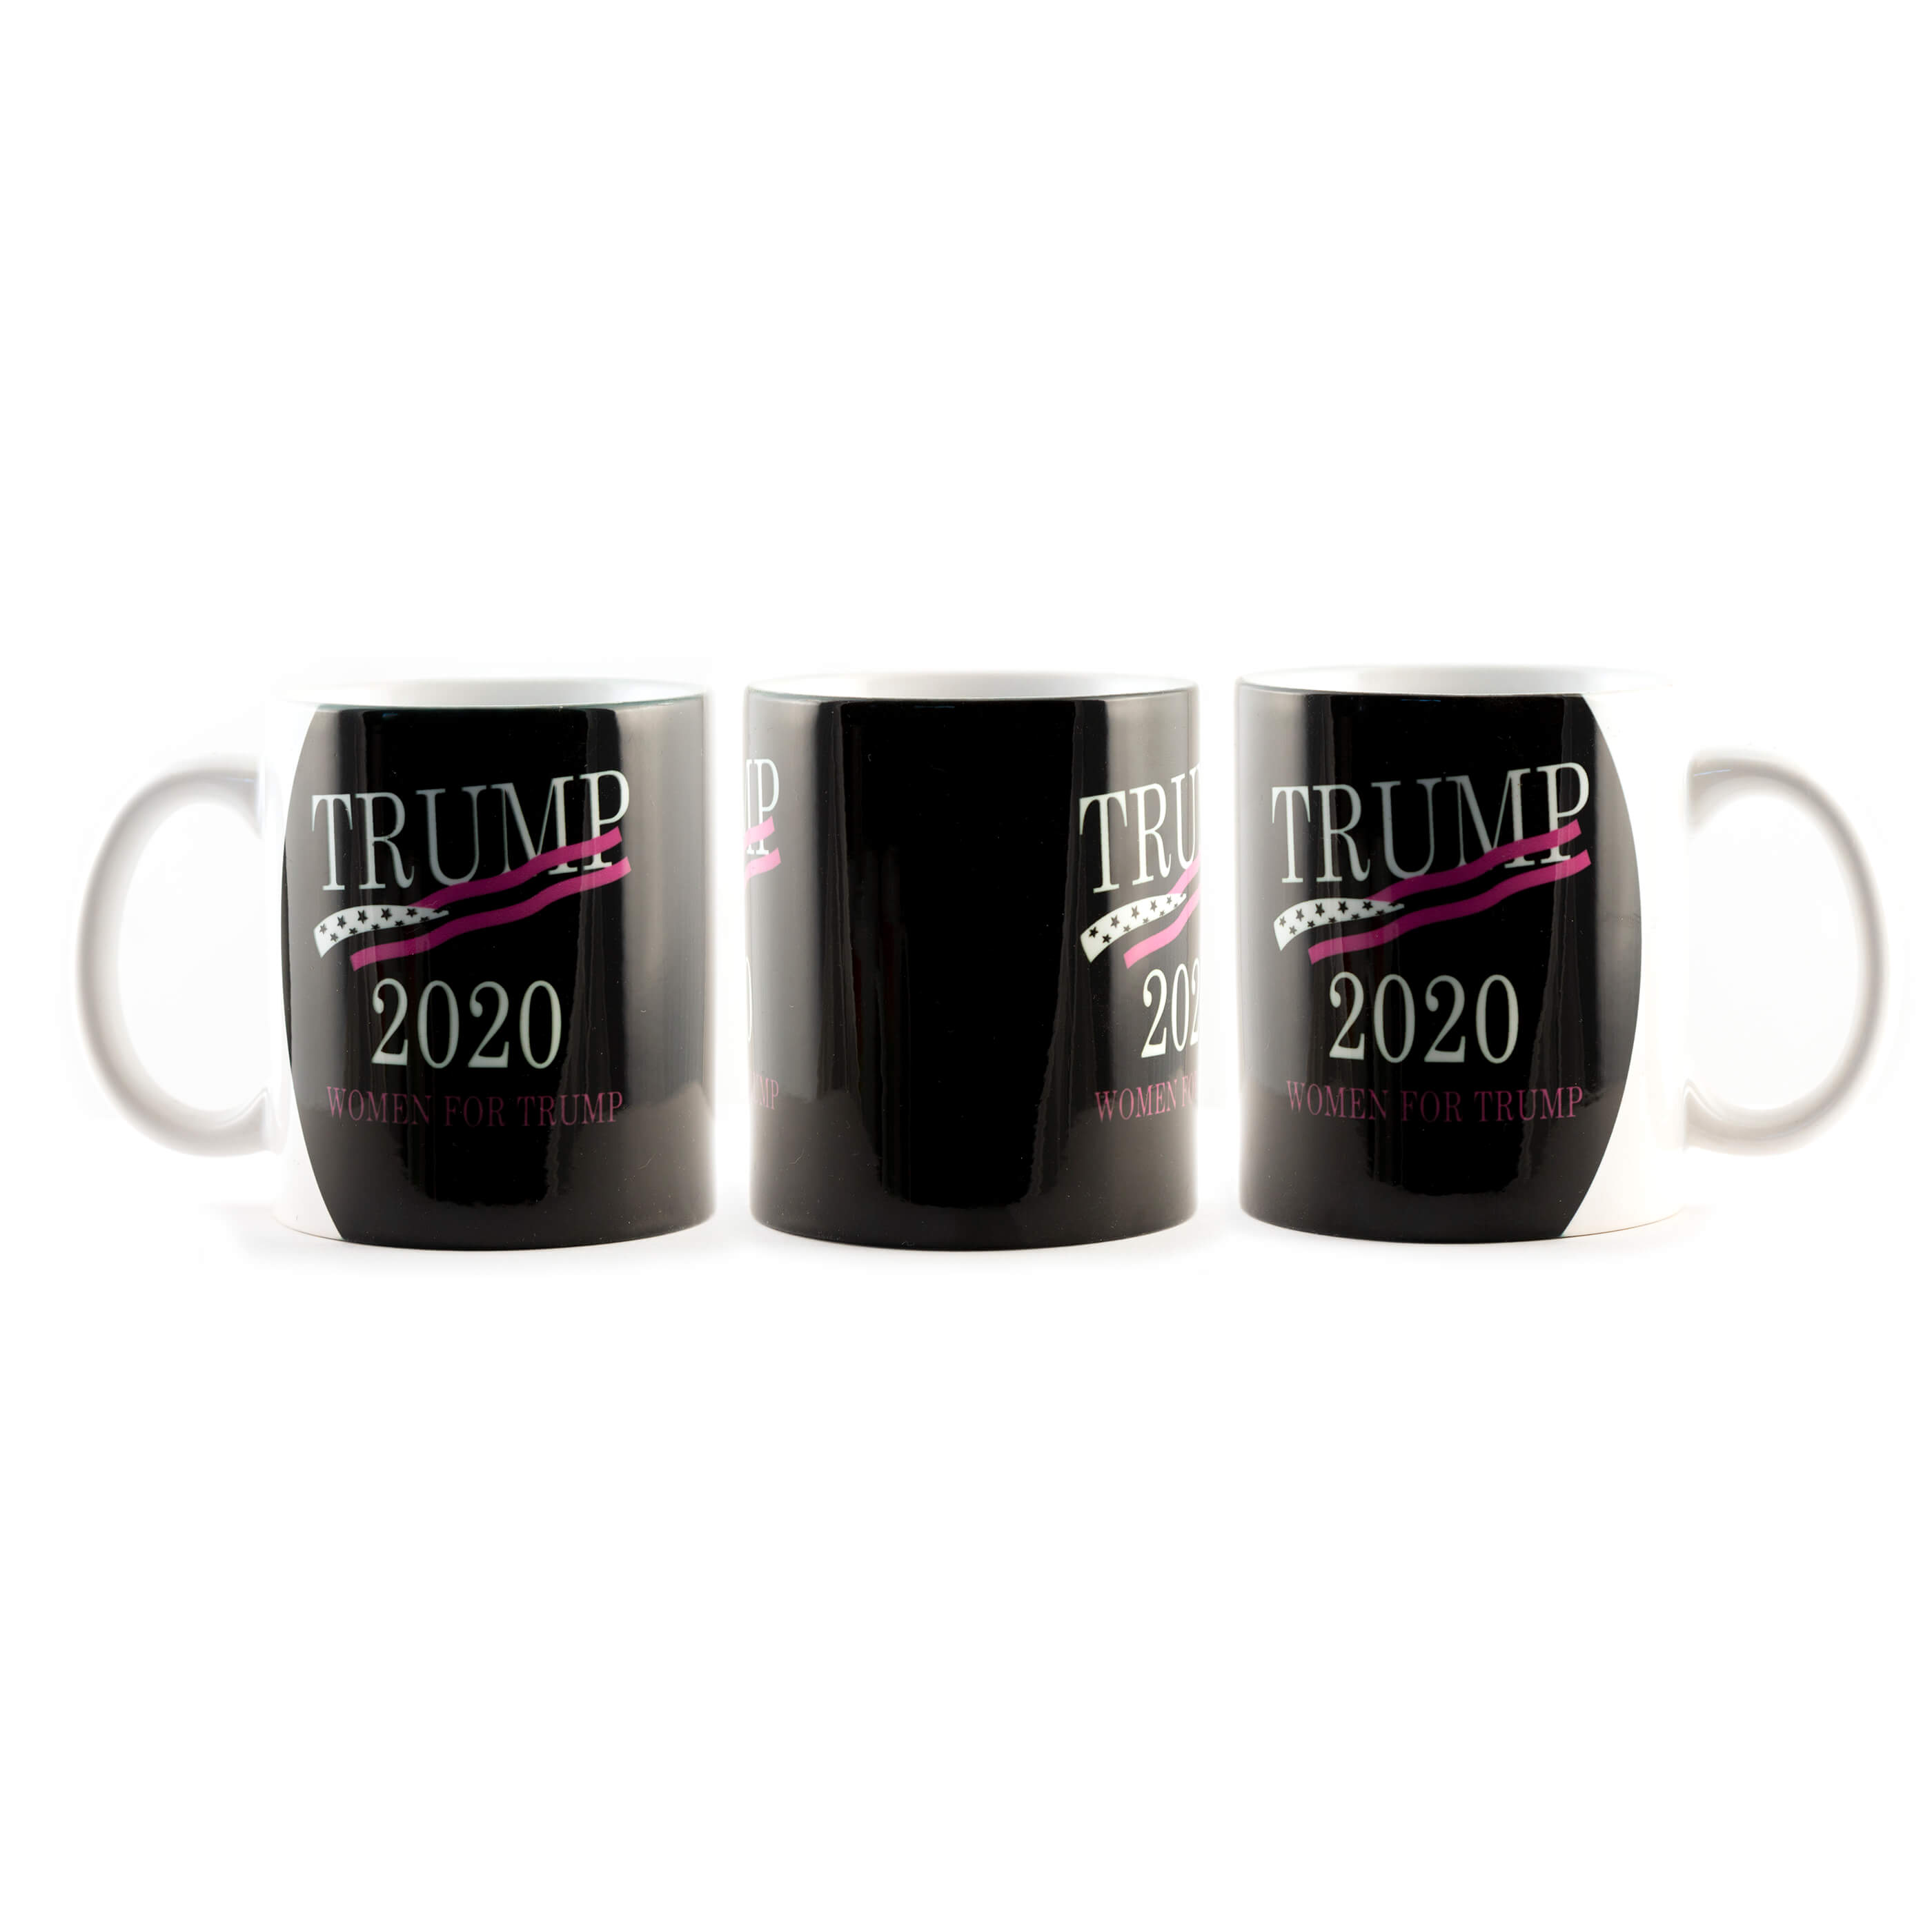 Women for Trump Black with Pink Flag Mug